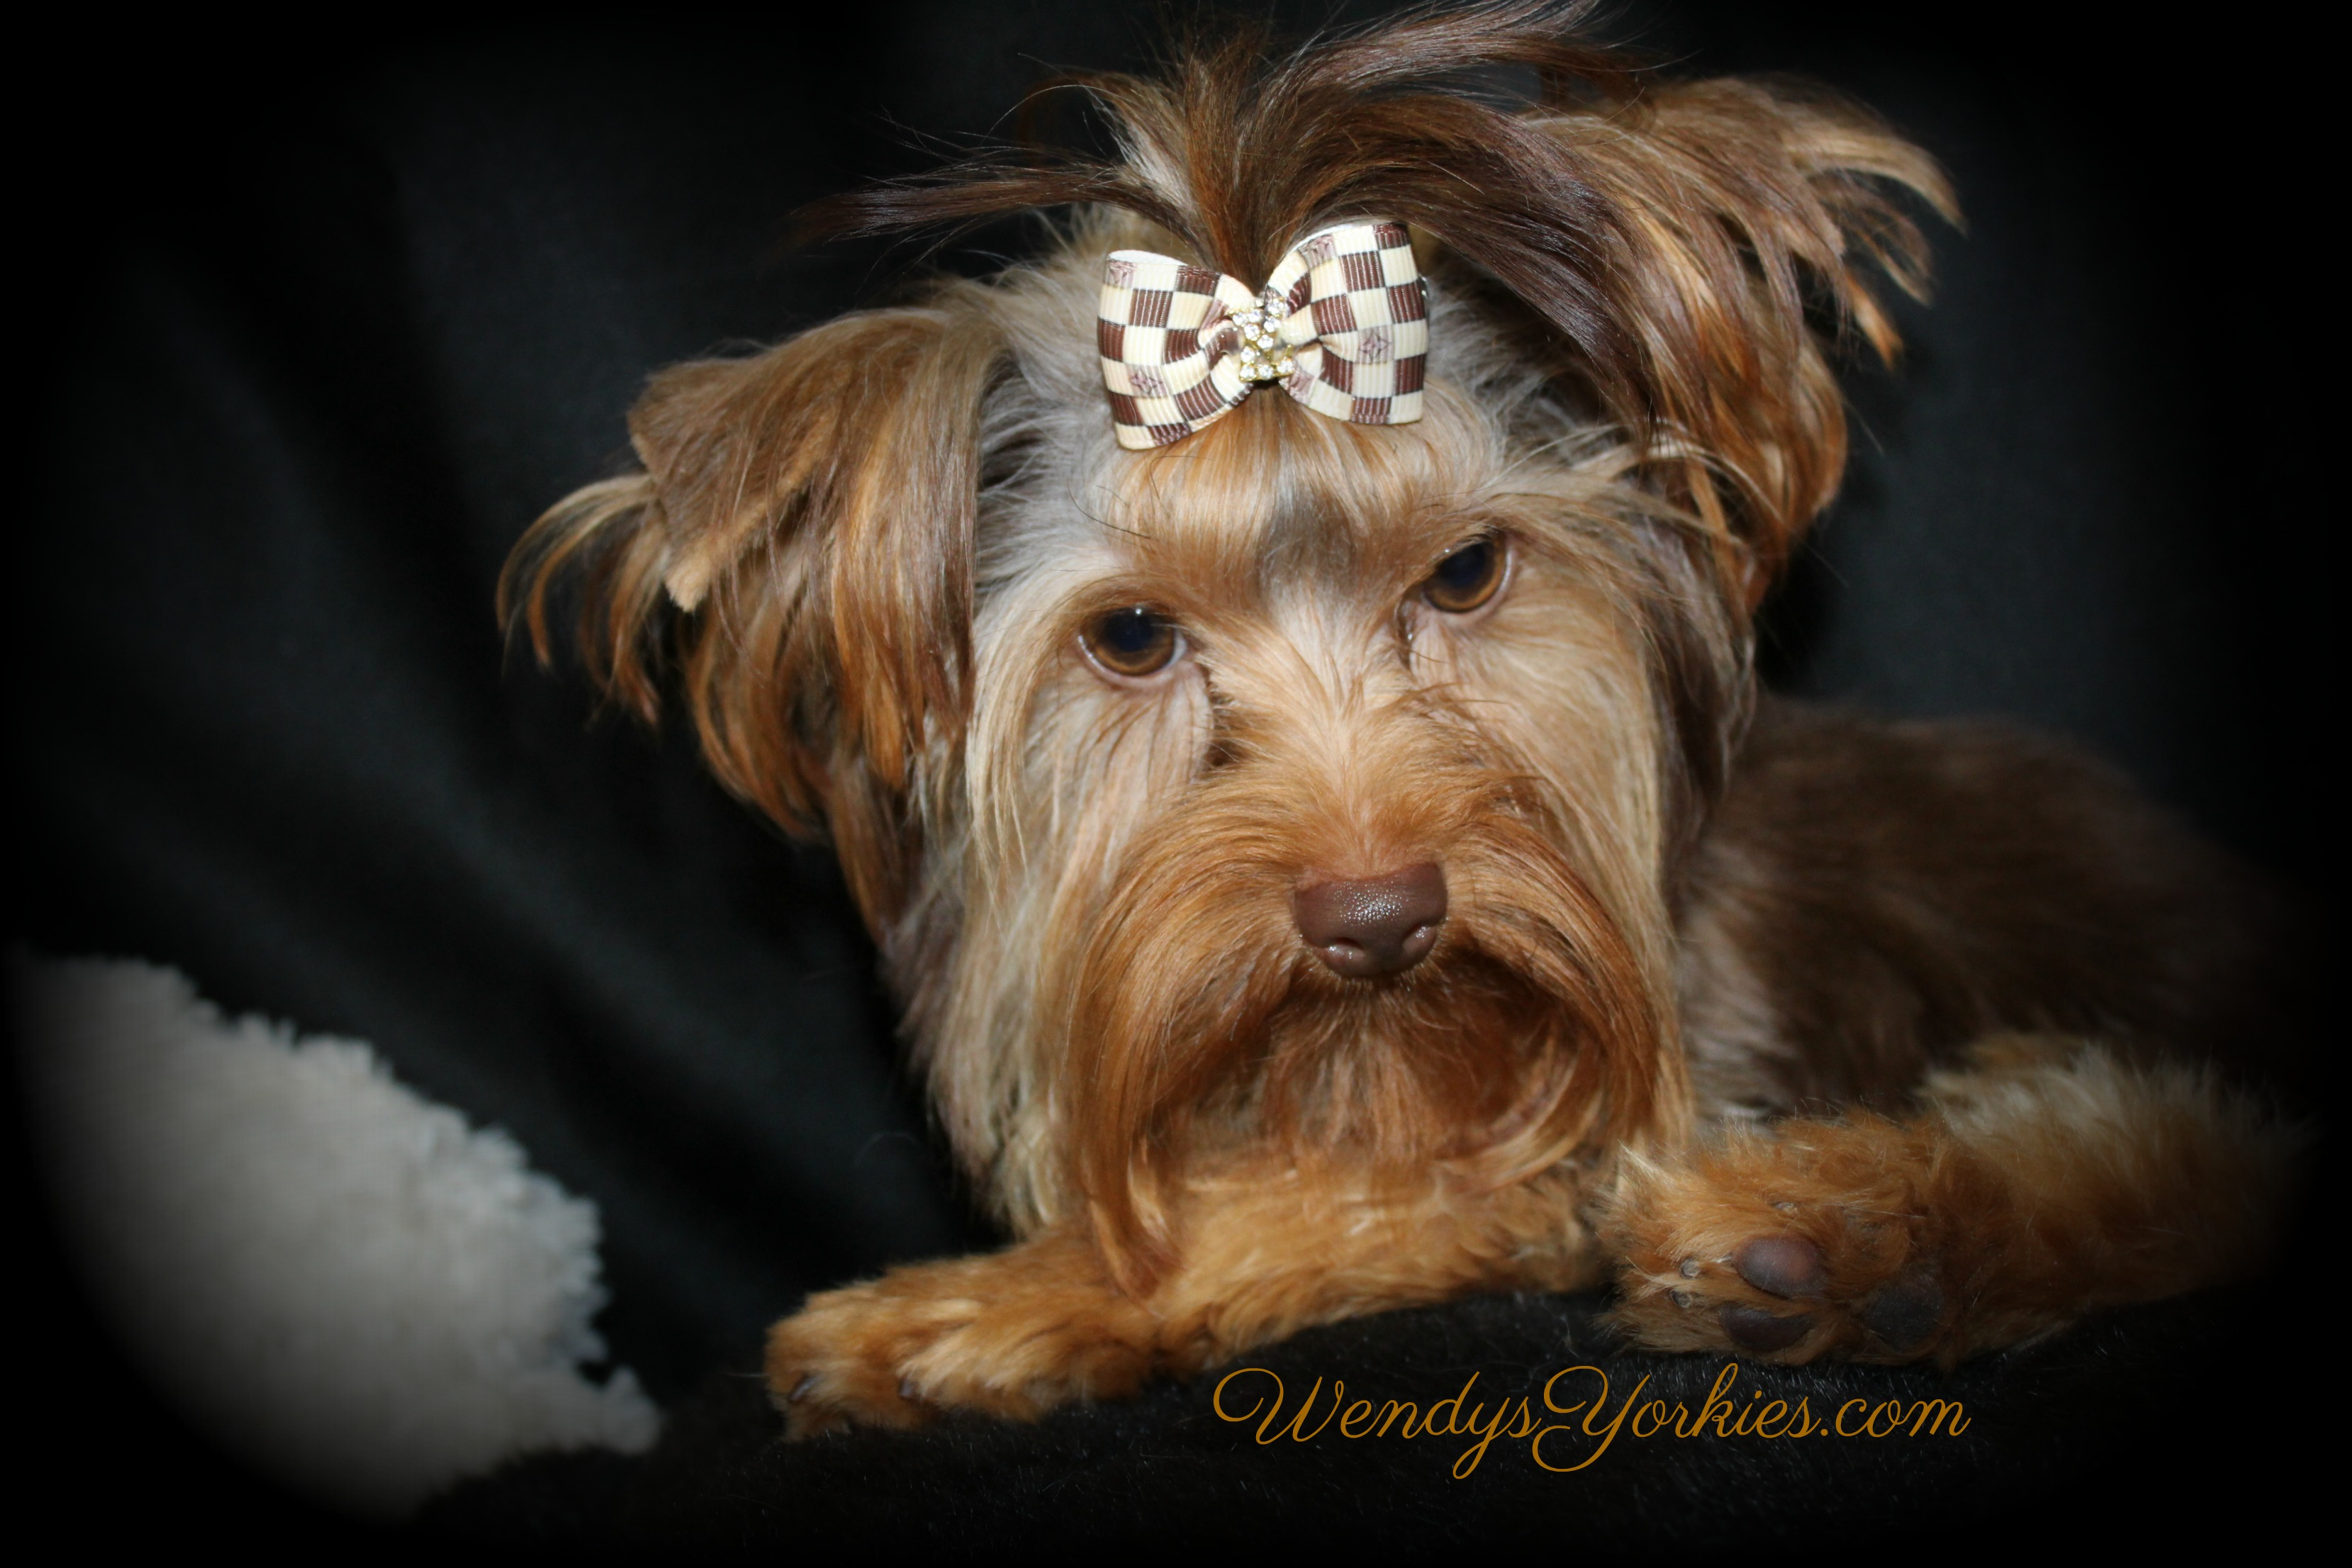 Available Male Yorkshire Terrier Puppies For Sale in TX